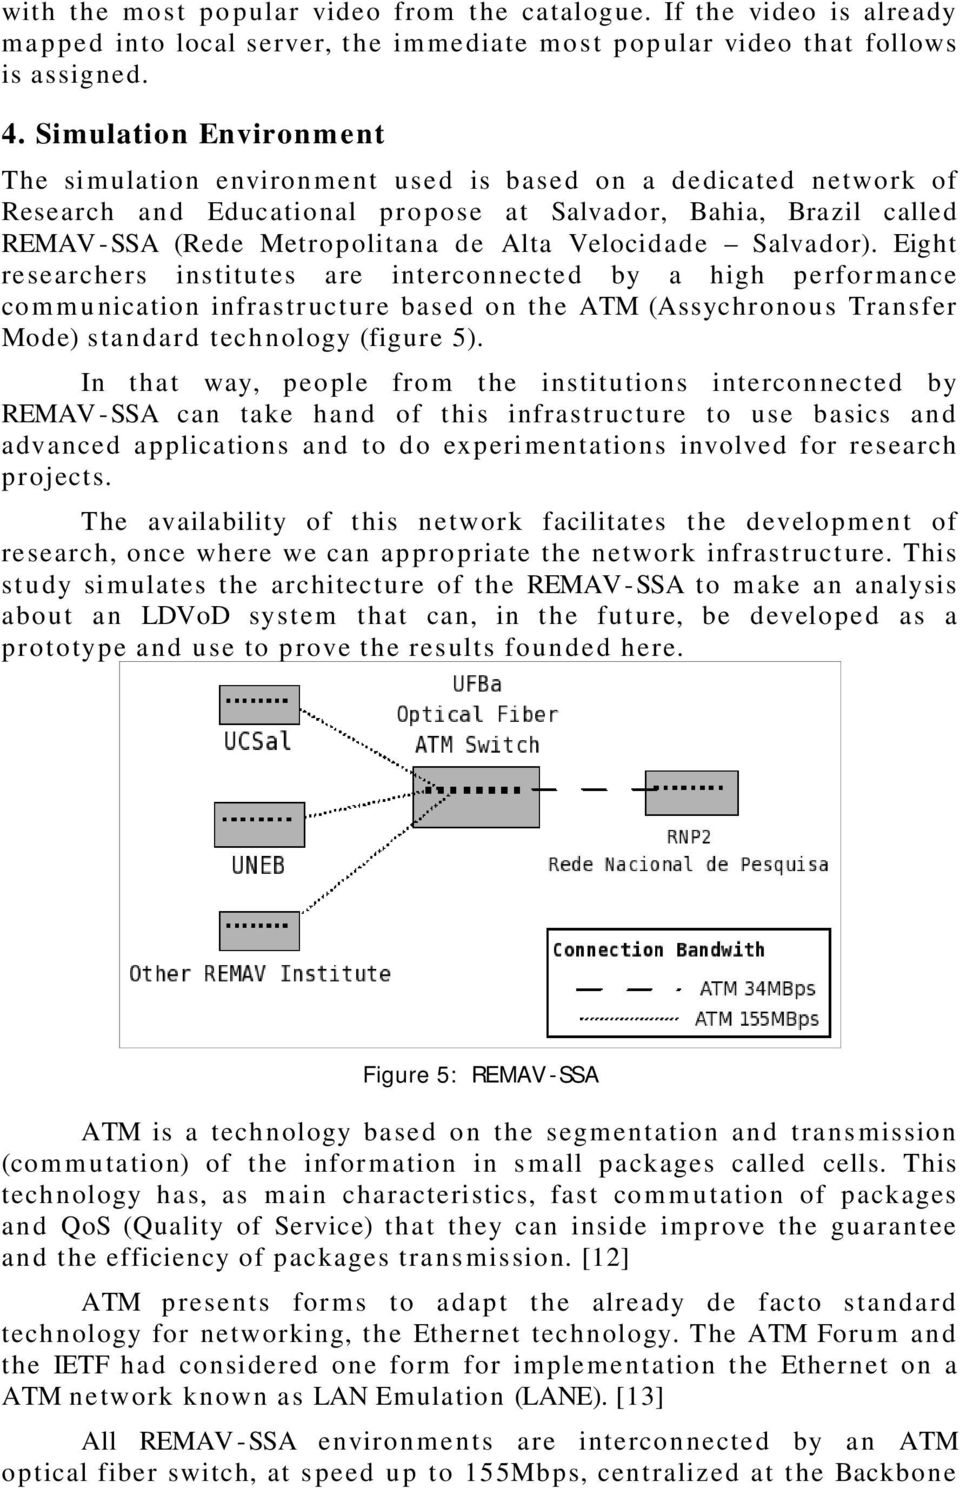 Velocidade Salvador). Eight researchers institutes are interconnected by a high perfor mance com munication infrastructure based on the ATM (Assychronous Transfer Mode) standard technology (figure 5).